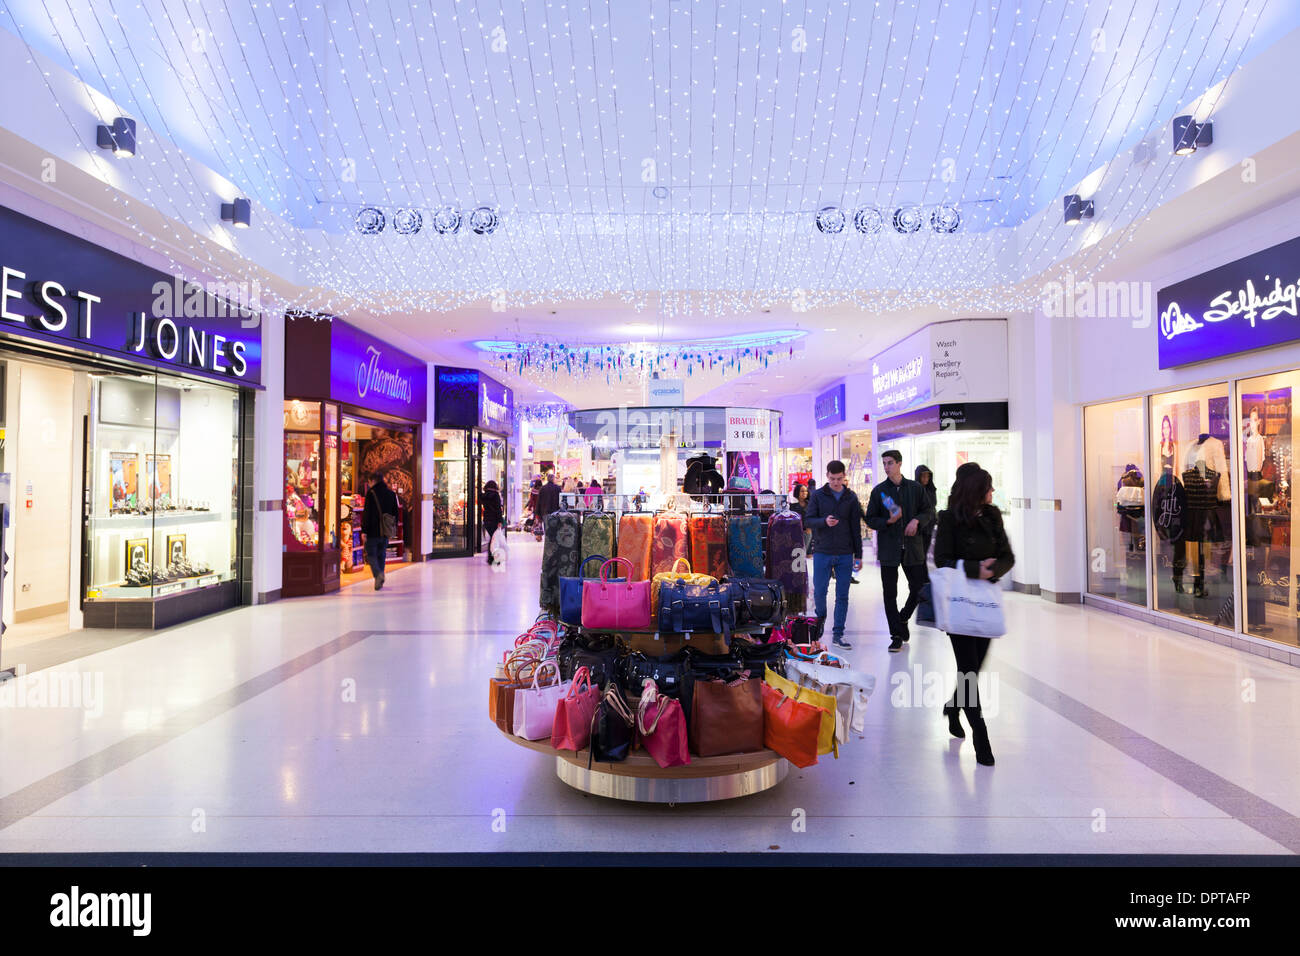 Shopping centre with christmas lights. - Stock Image